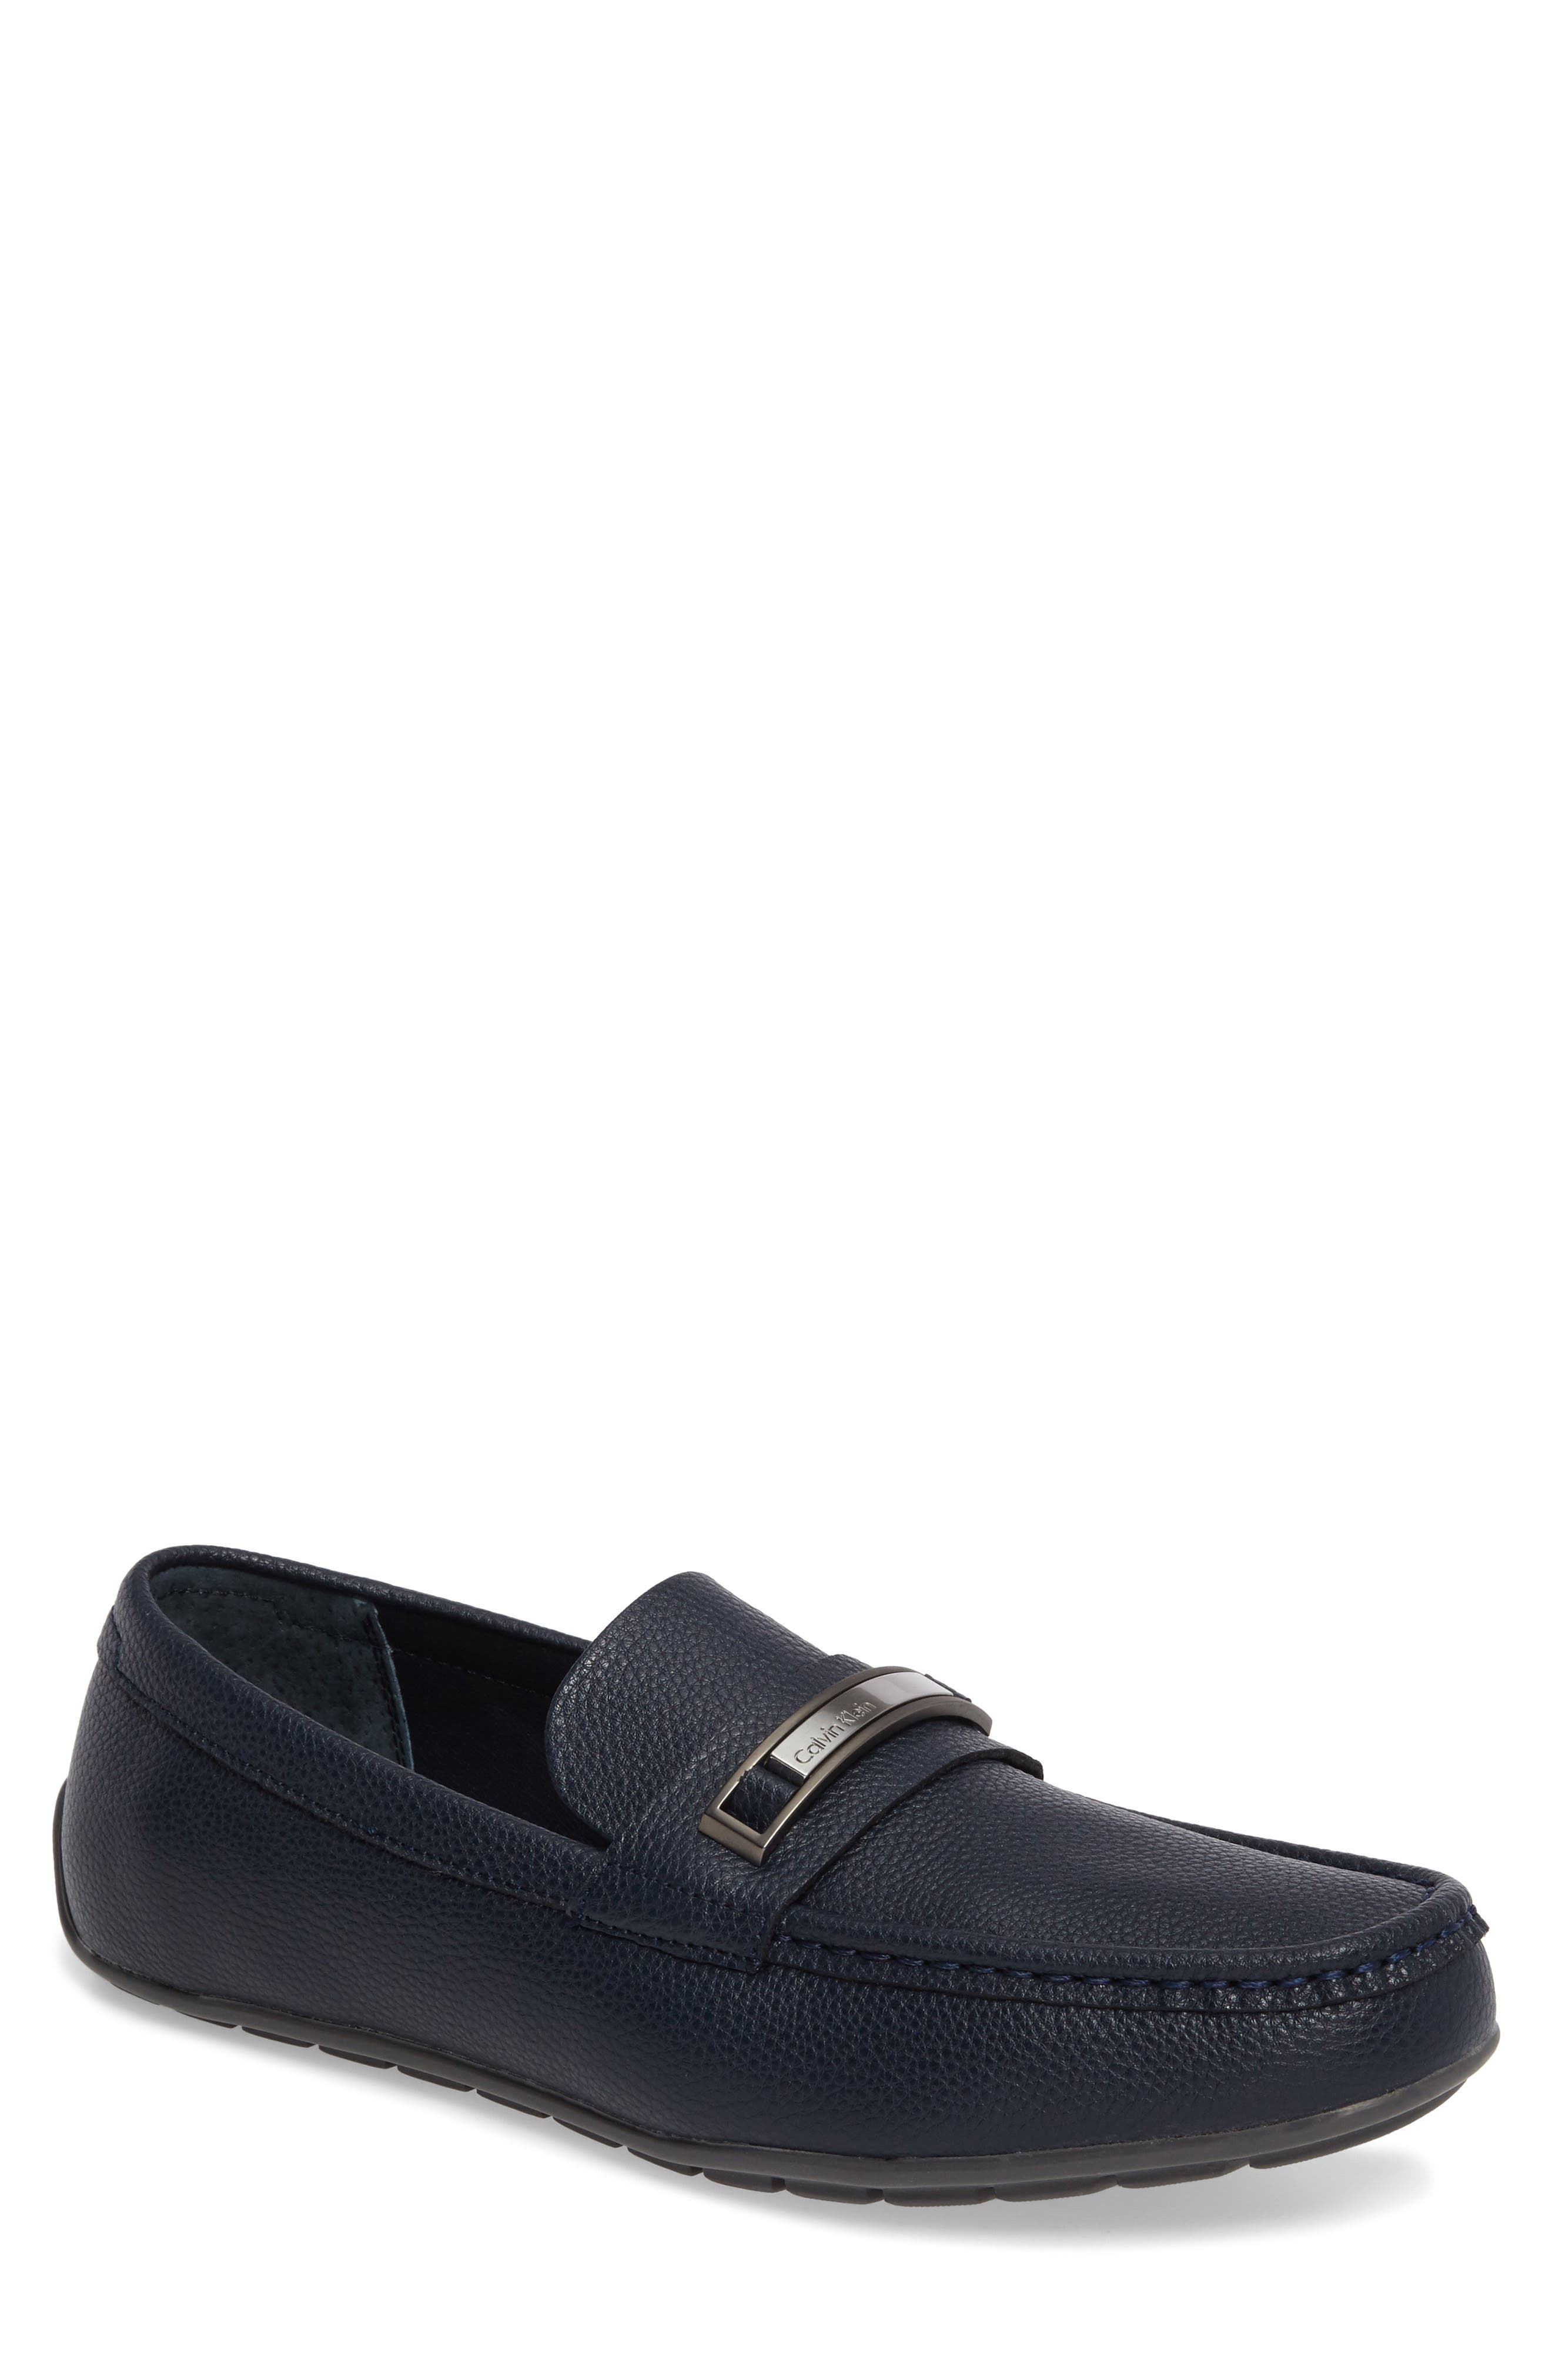 Irving Driving Loafer,                             Main thumbnail 4, color,